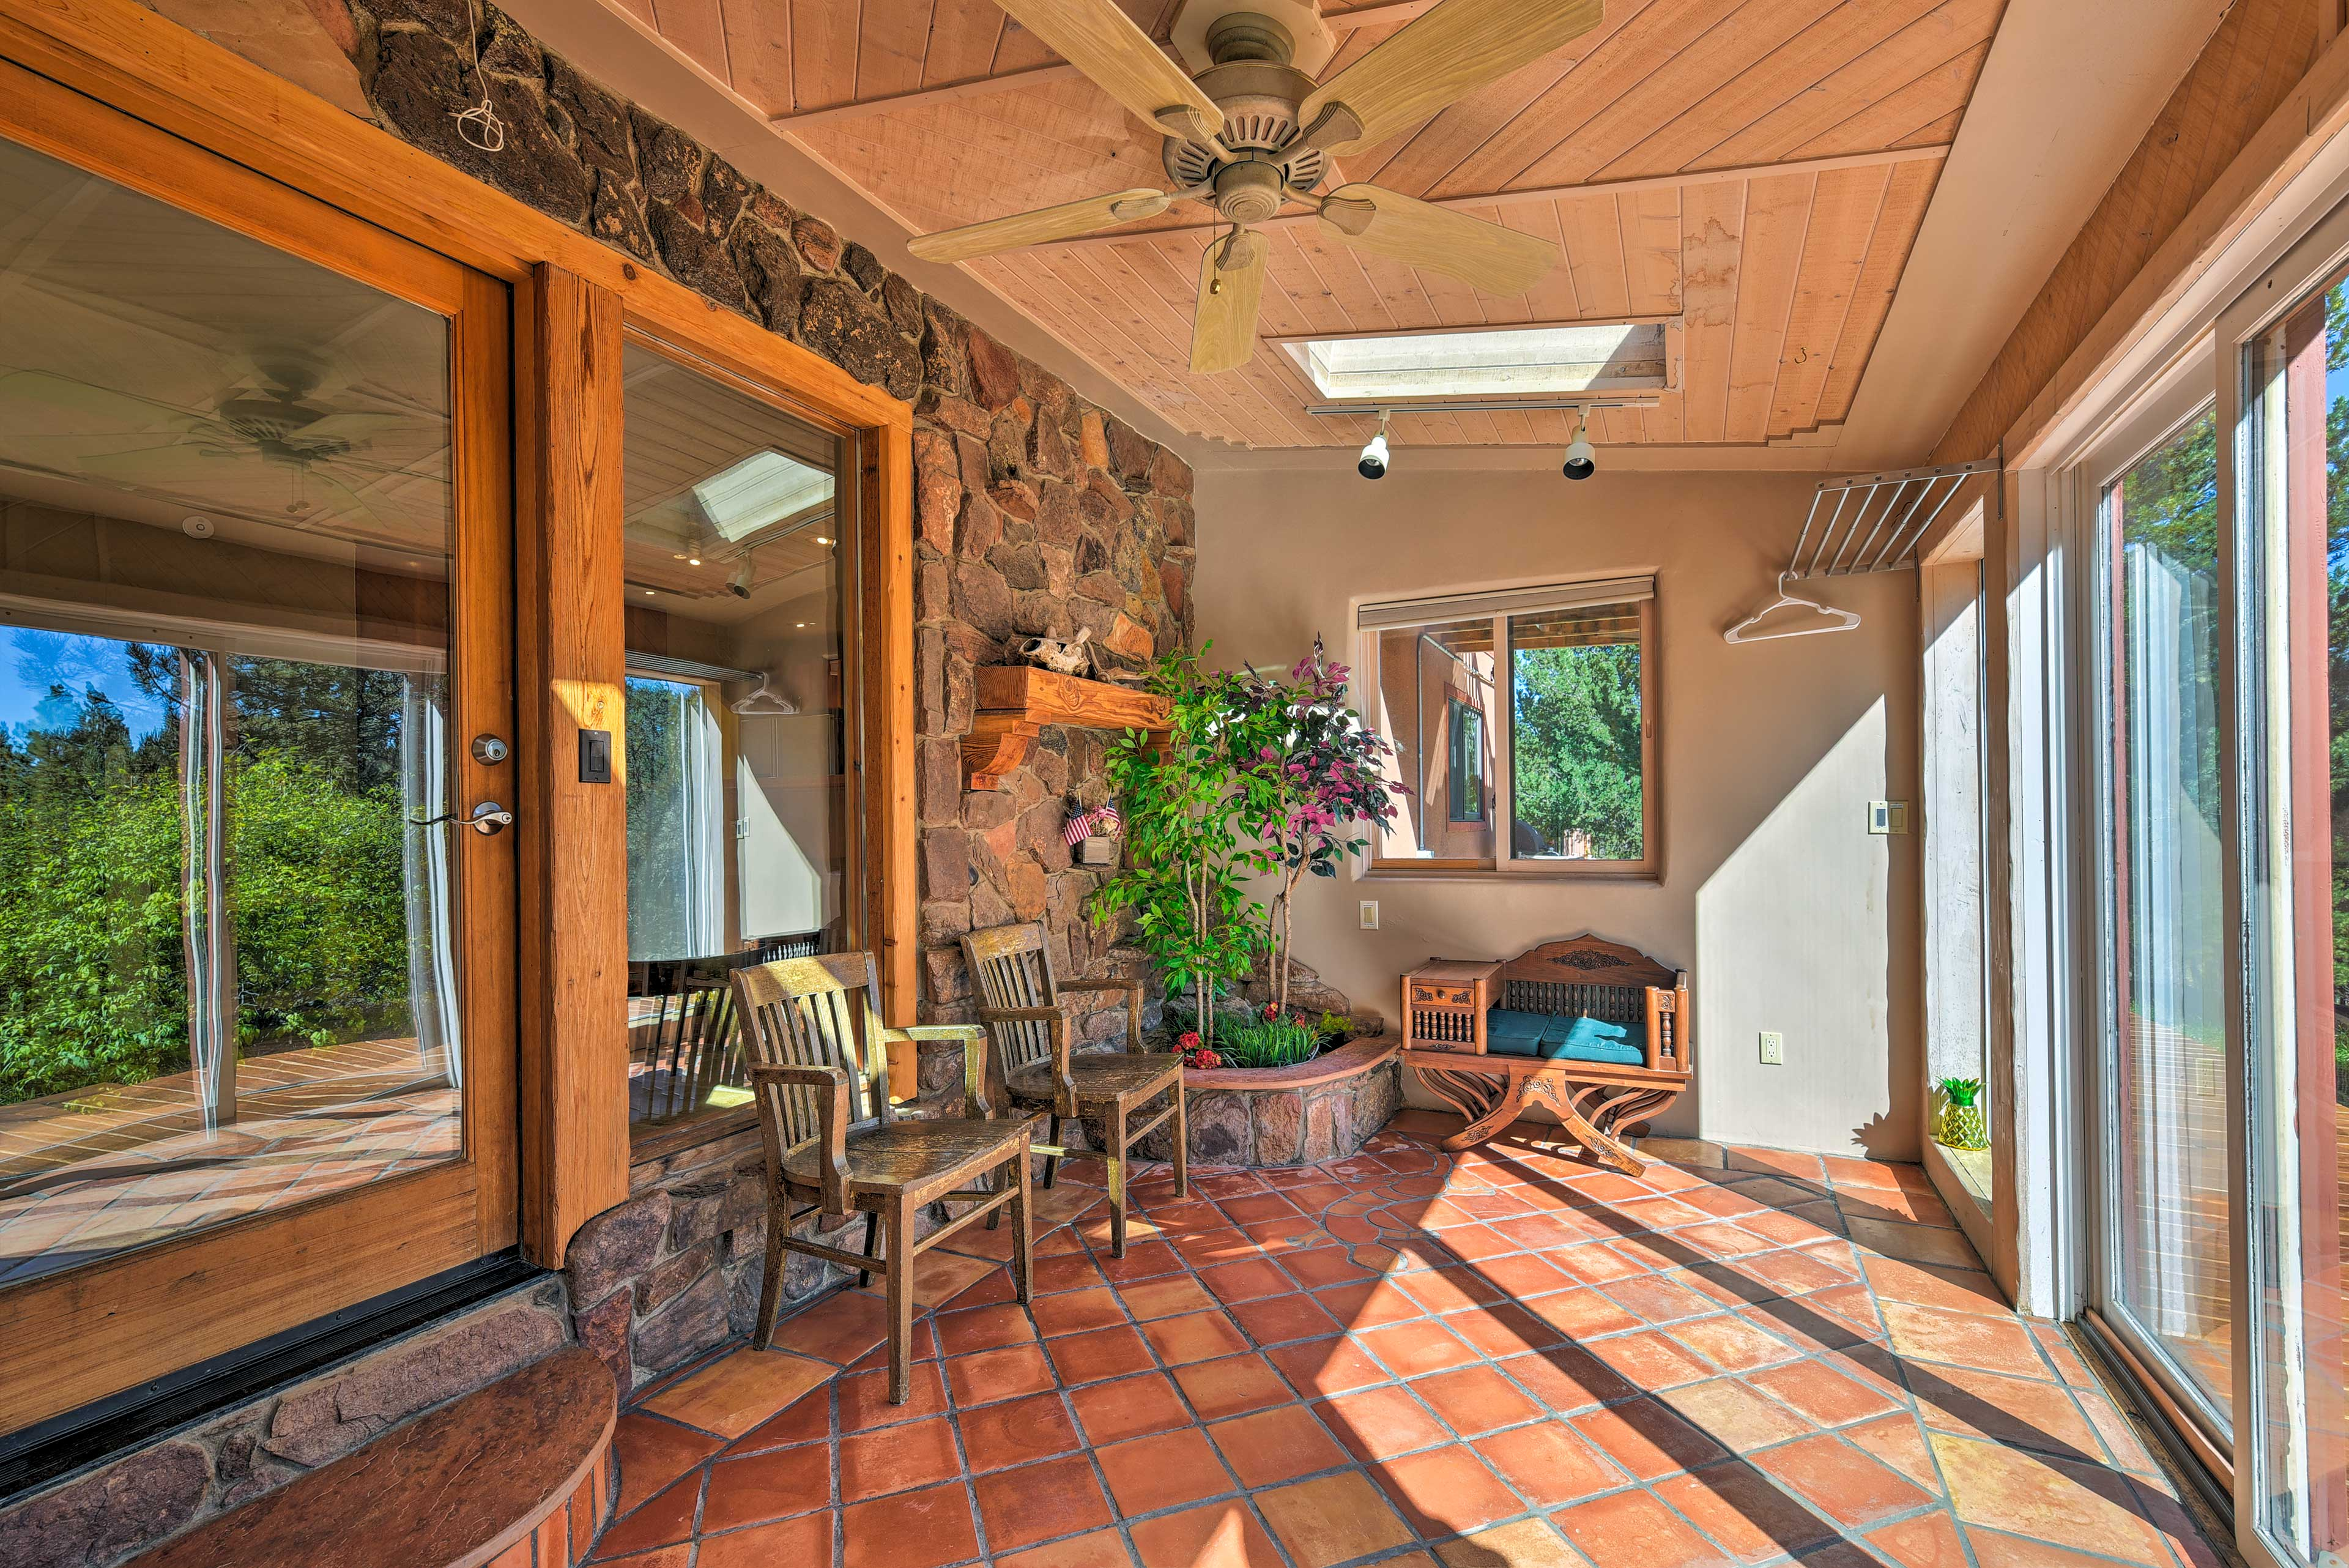 Take a seat in the sunroom to watch the neighboring wildlife meandering by.